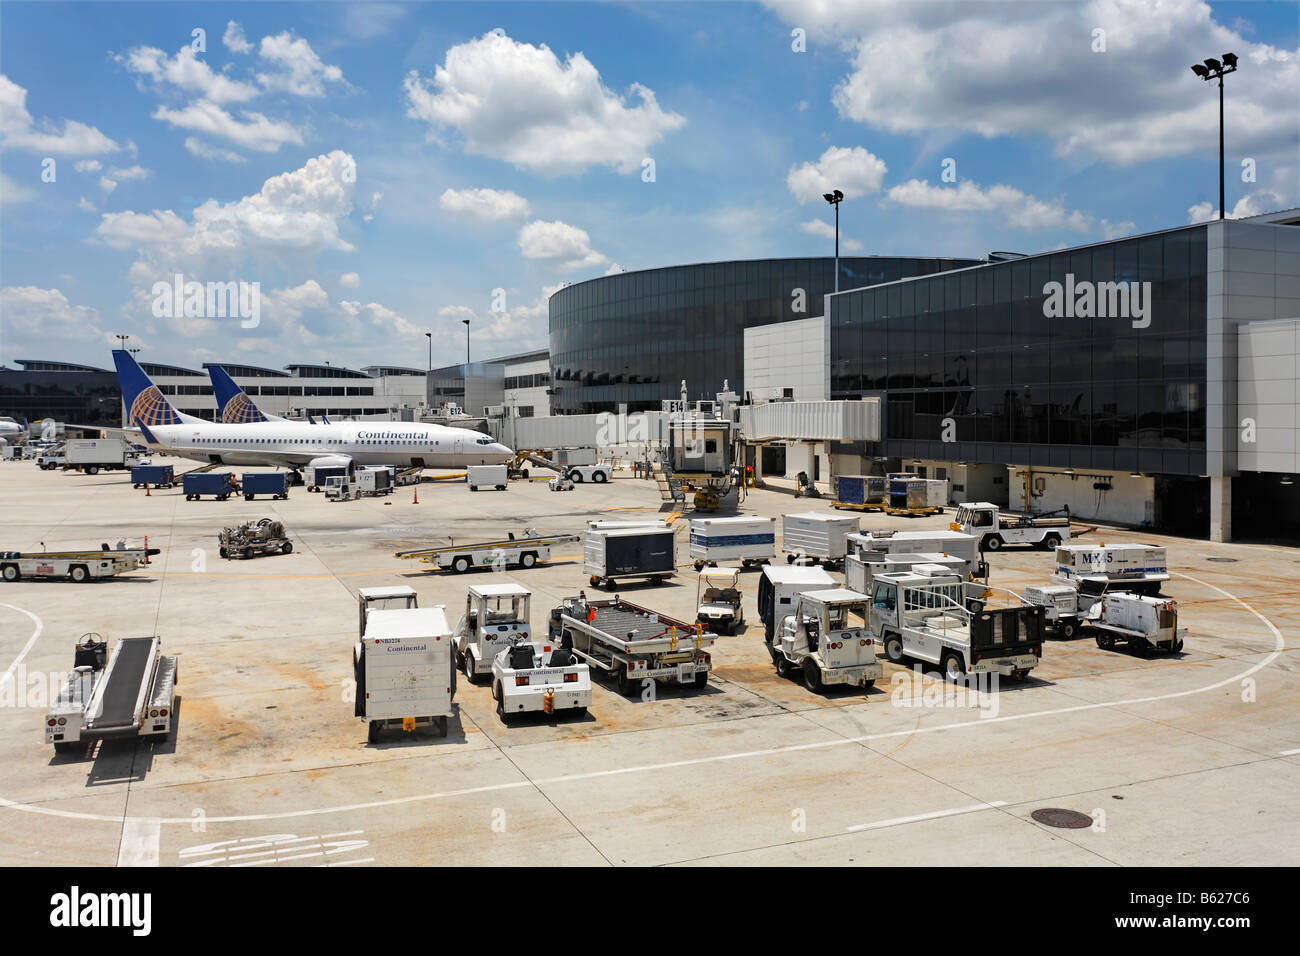 Apron area and airport building, Continental Airlines airplanes and customs clearance vehicles, George W. Bush International - Stock Image